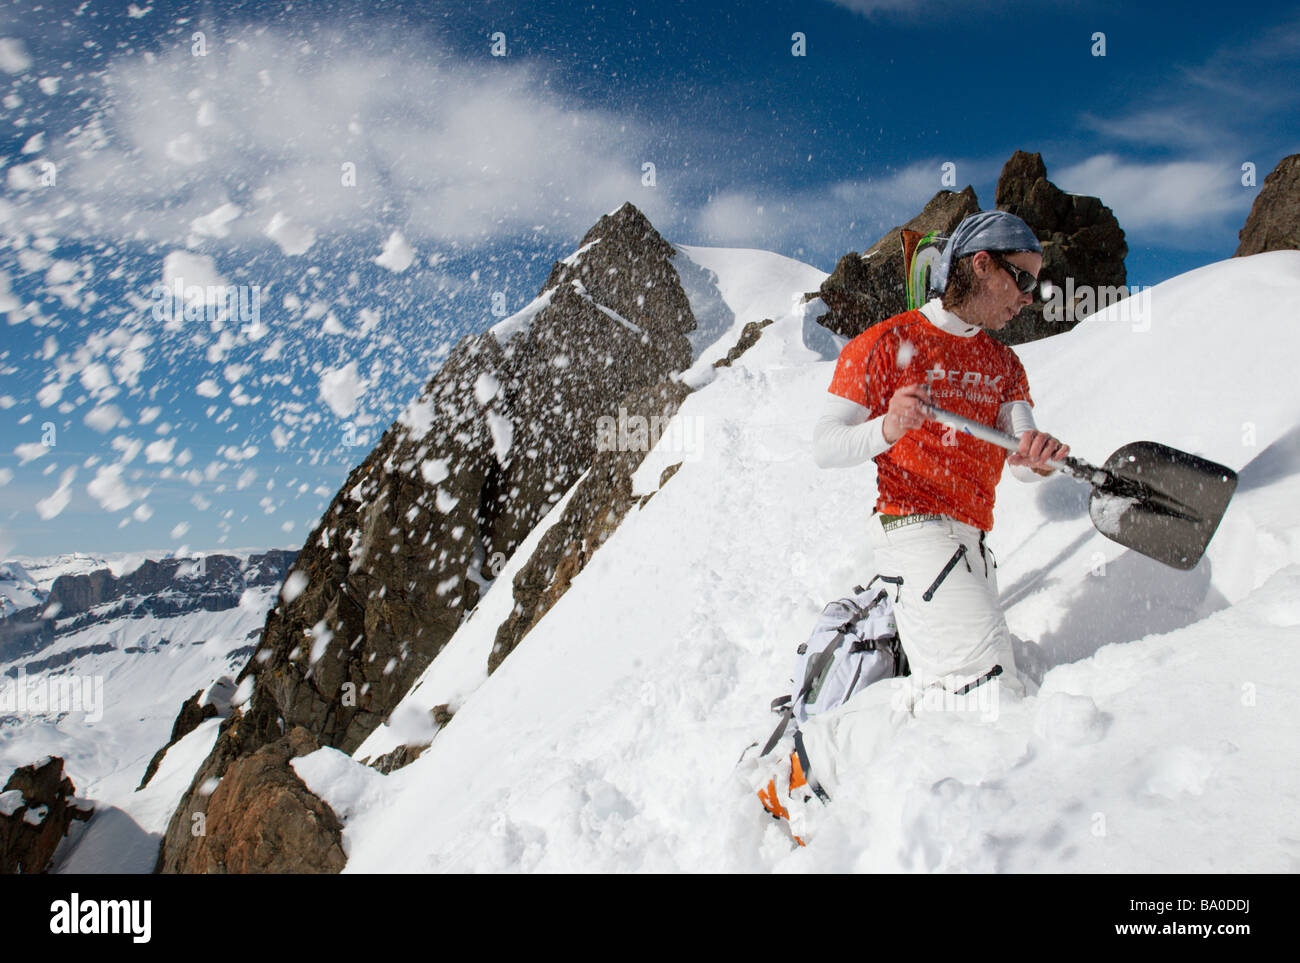 Skier digging snow in the mountains, Chamonix, France - Stock Image